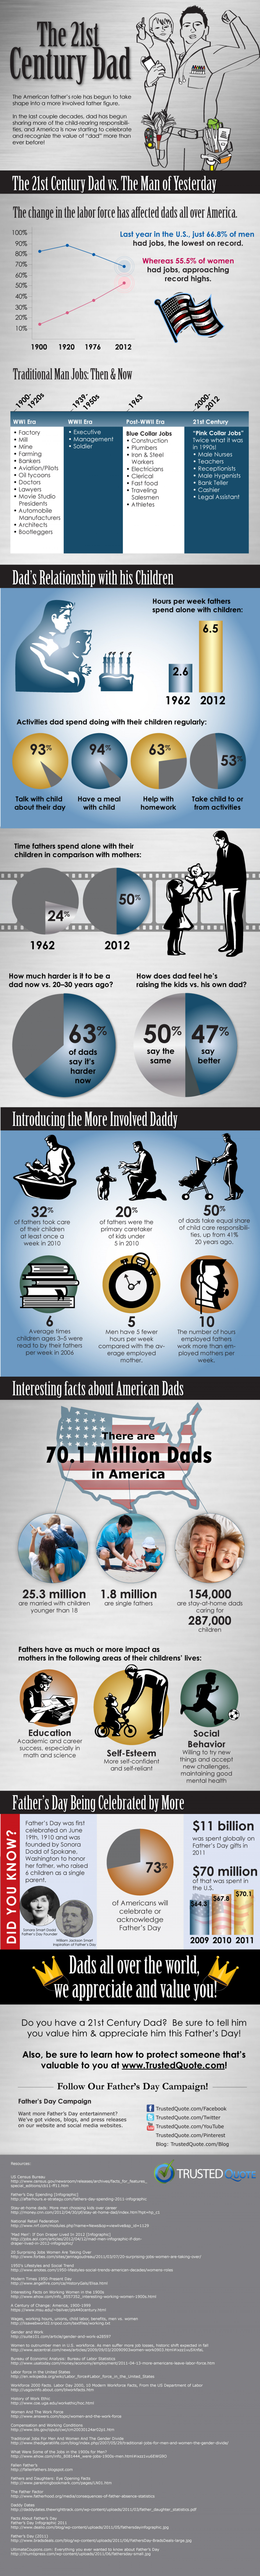 The 21st Century Dad: Happy Father's Day! Infographic